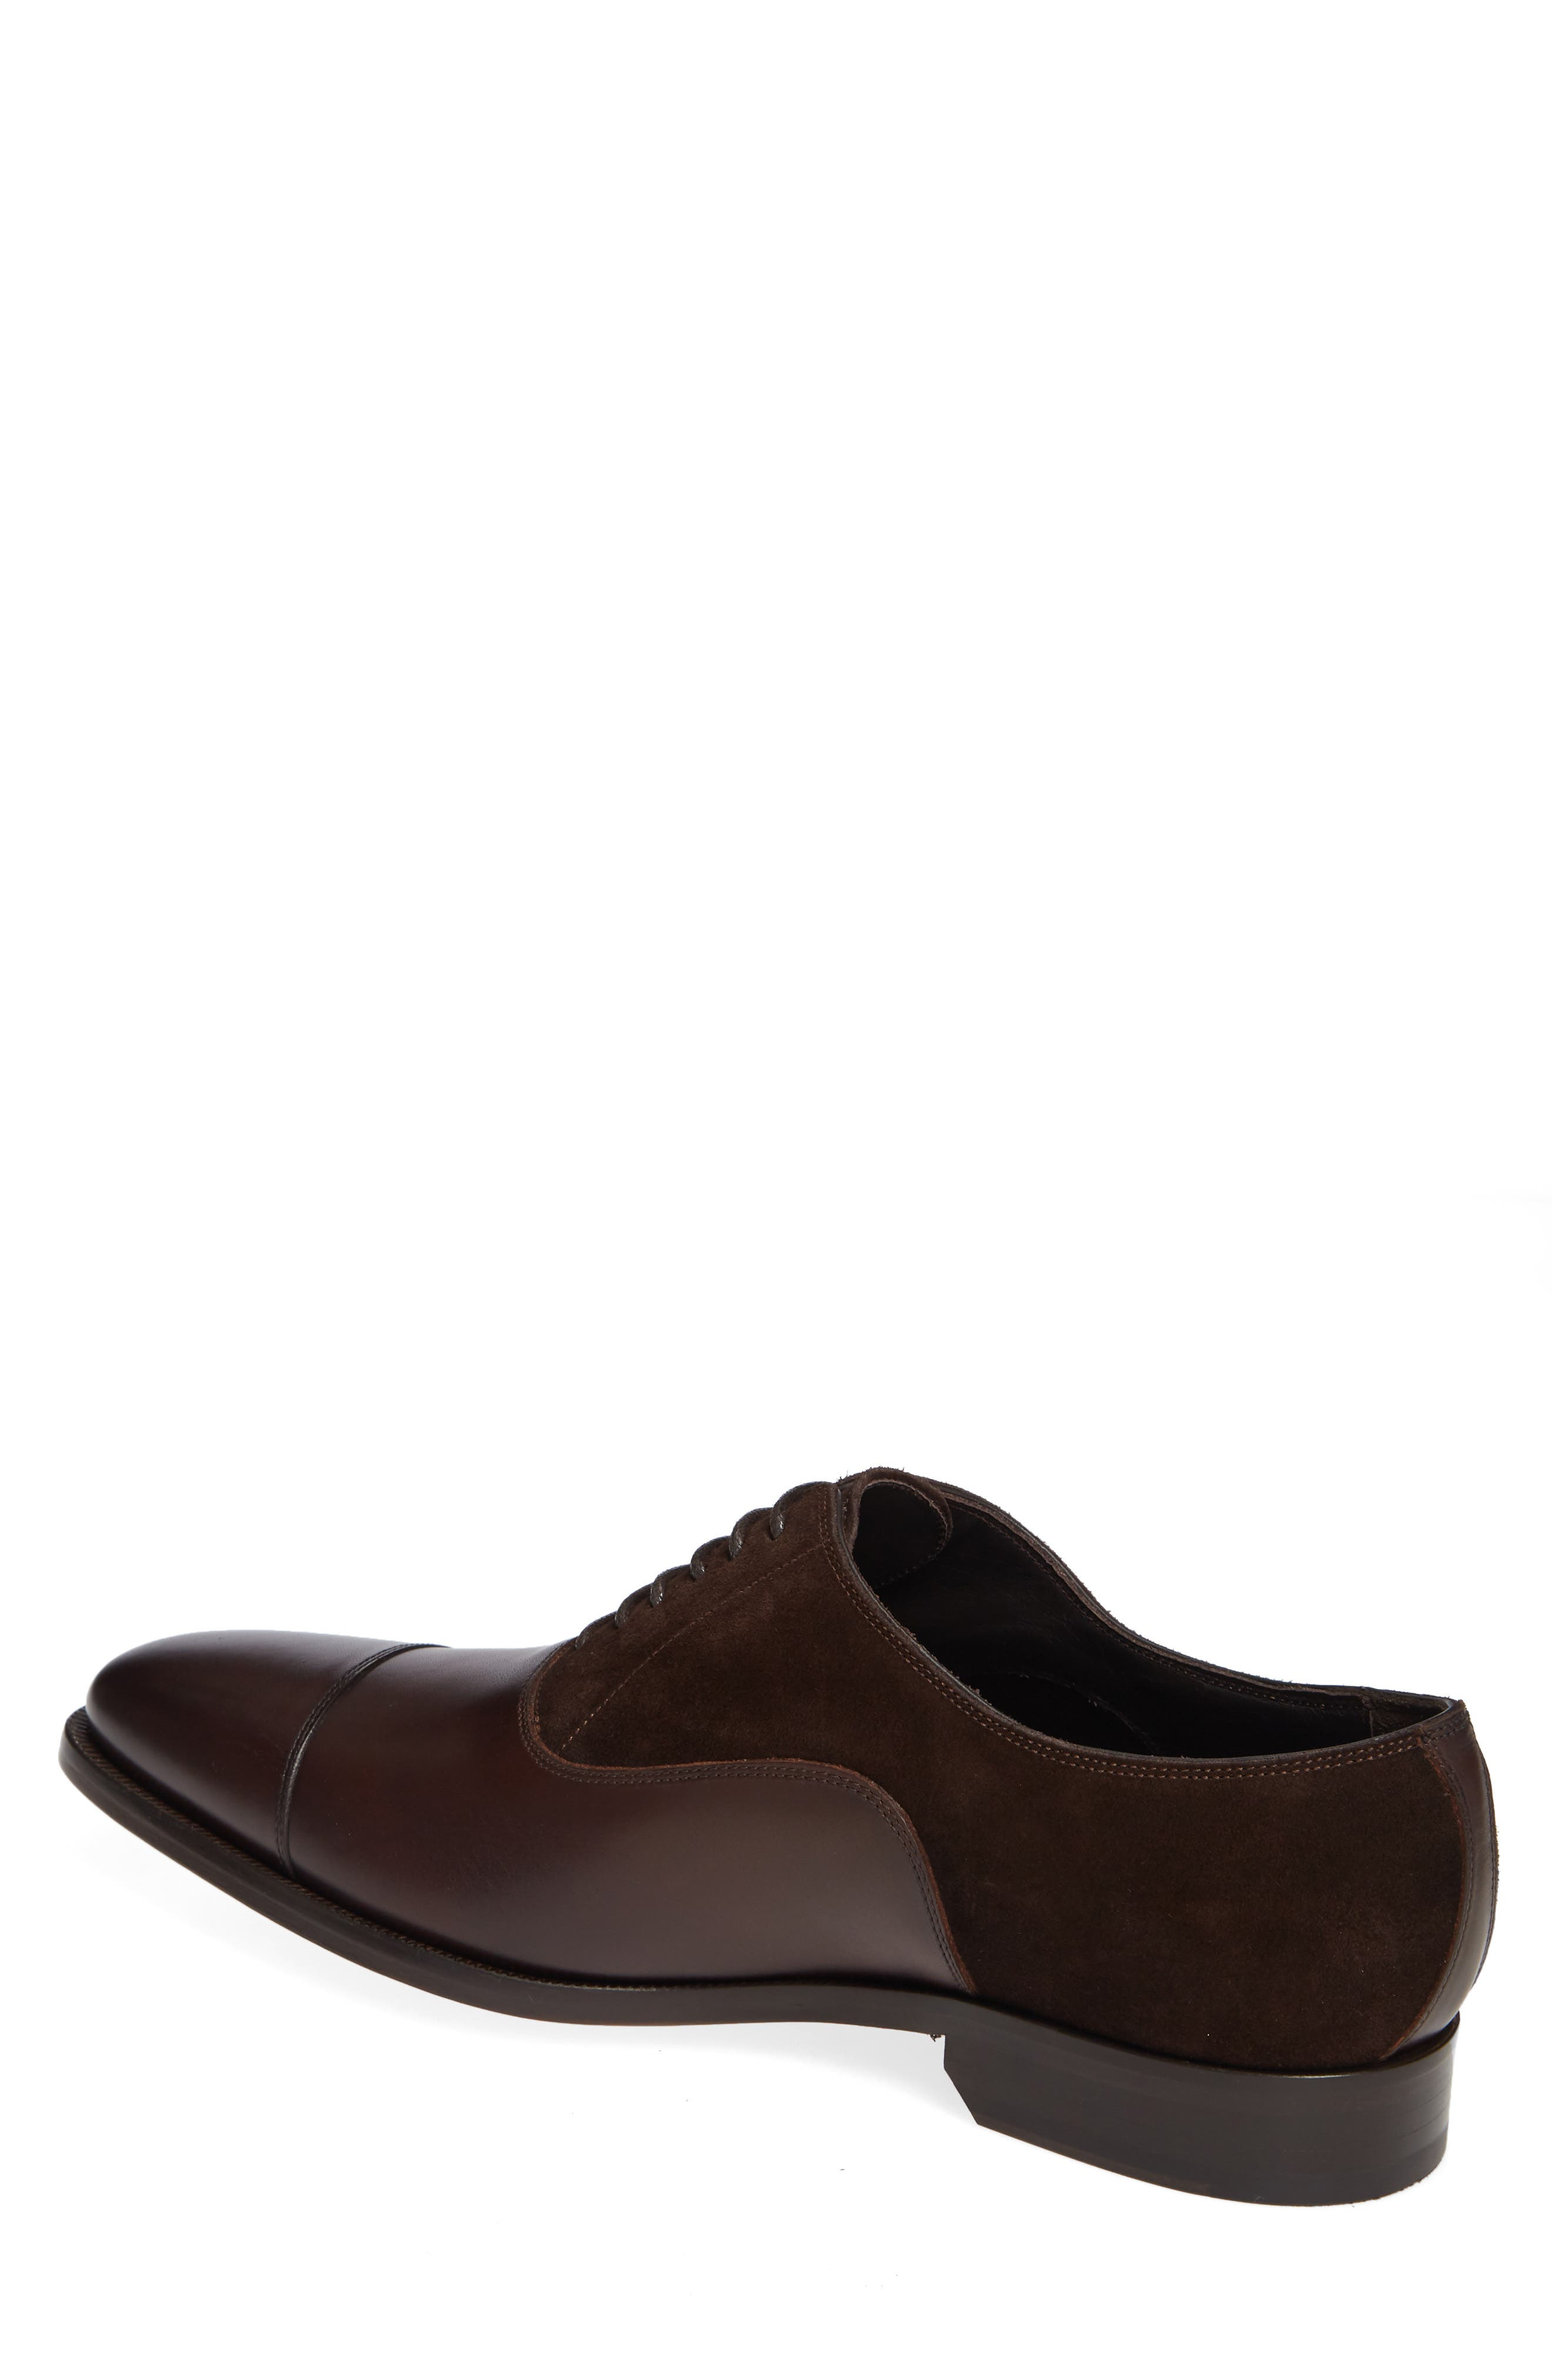 Amadora Cap Toe Oxford,                             Alternate thumbnail 2, color,                             BERRY/ BROWN LEATHER